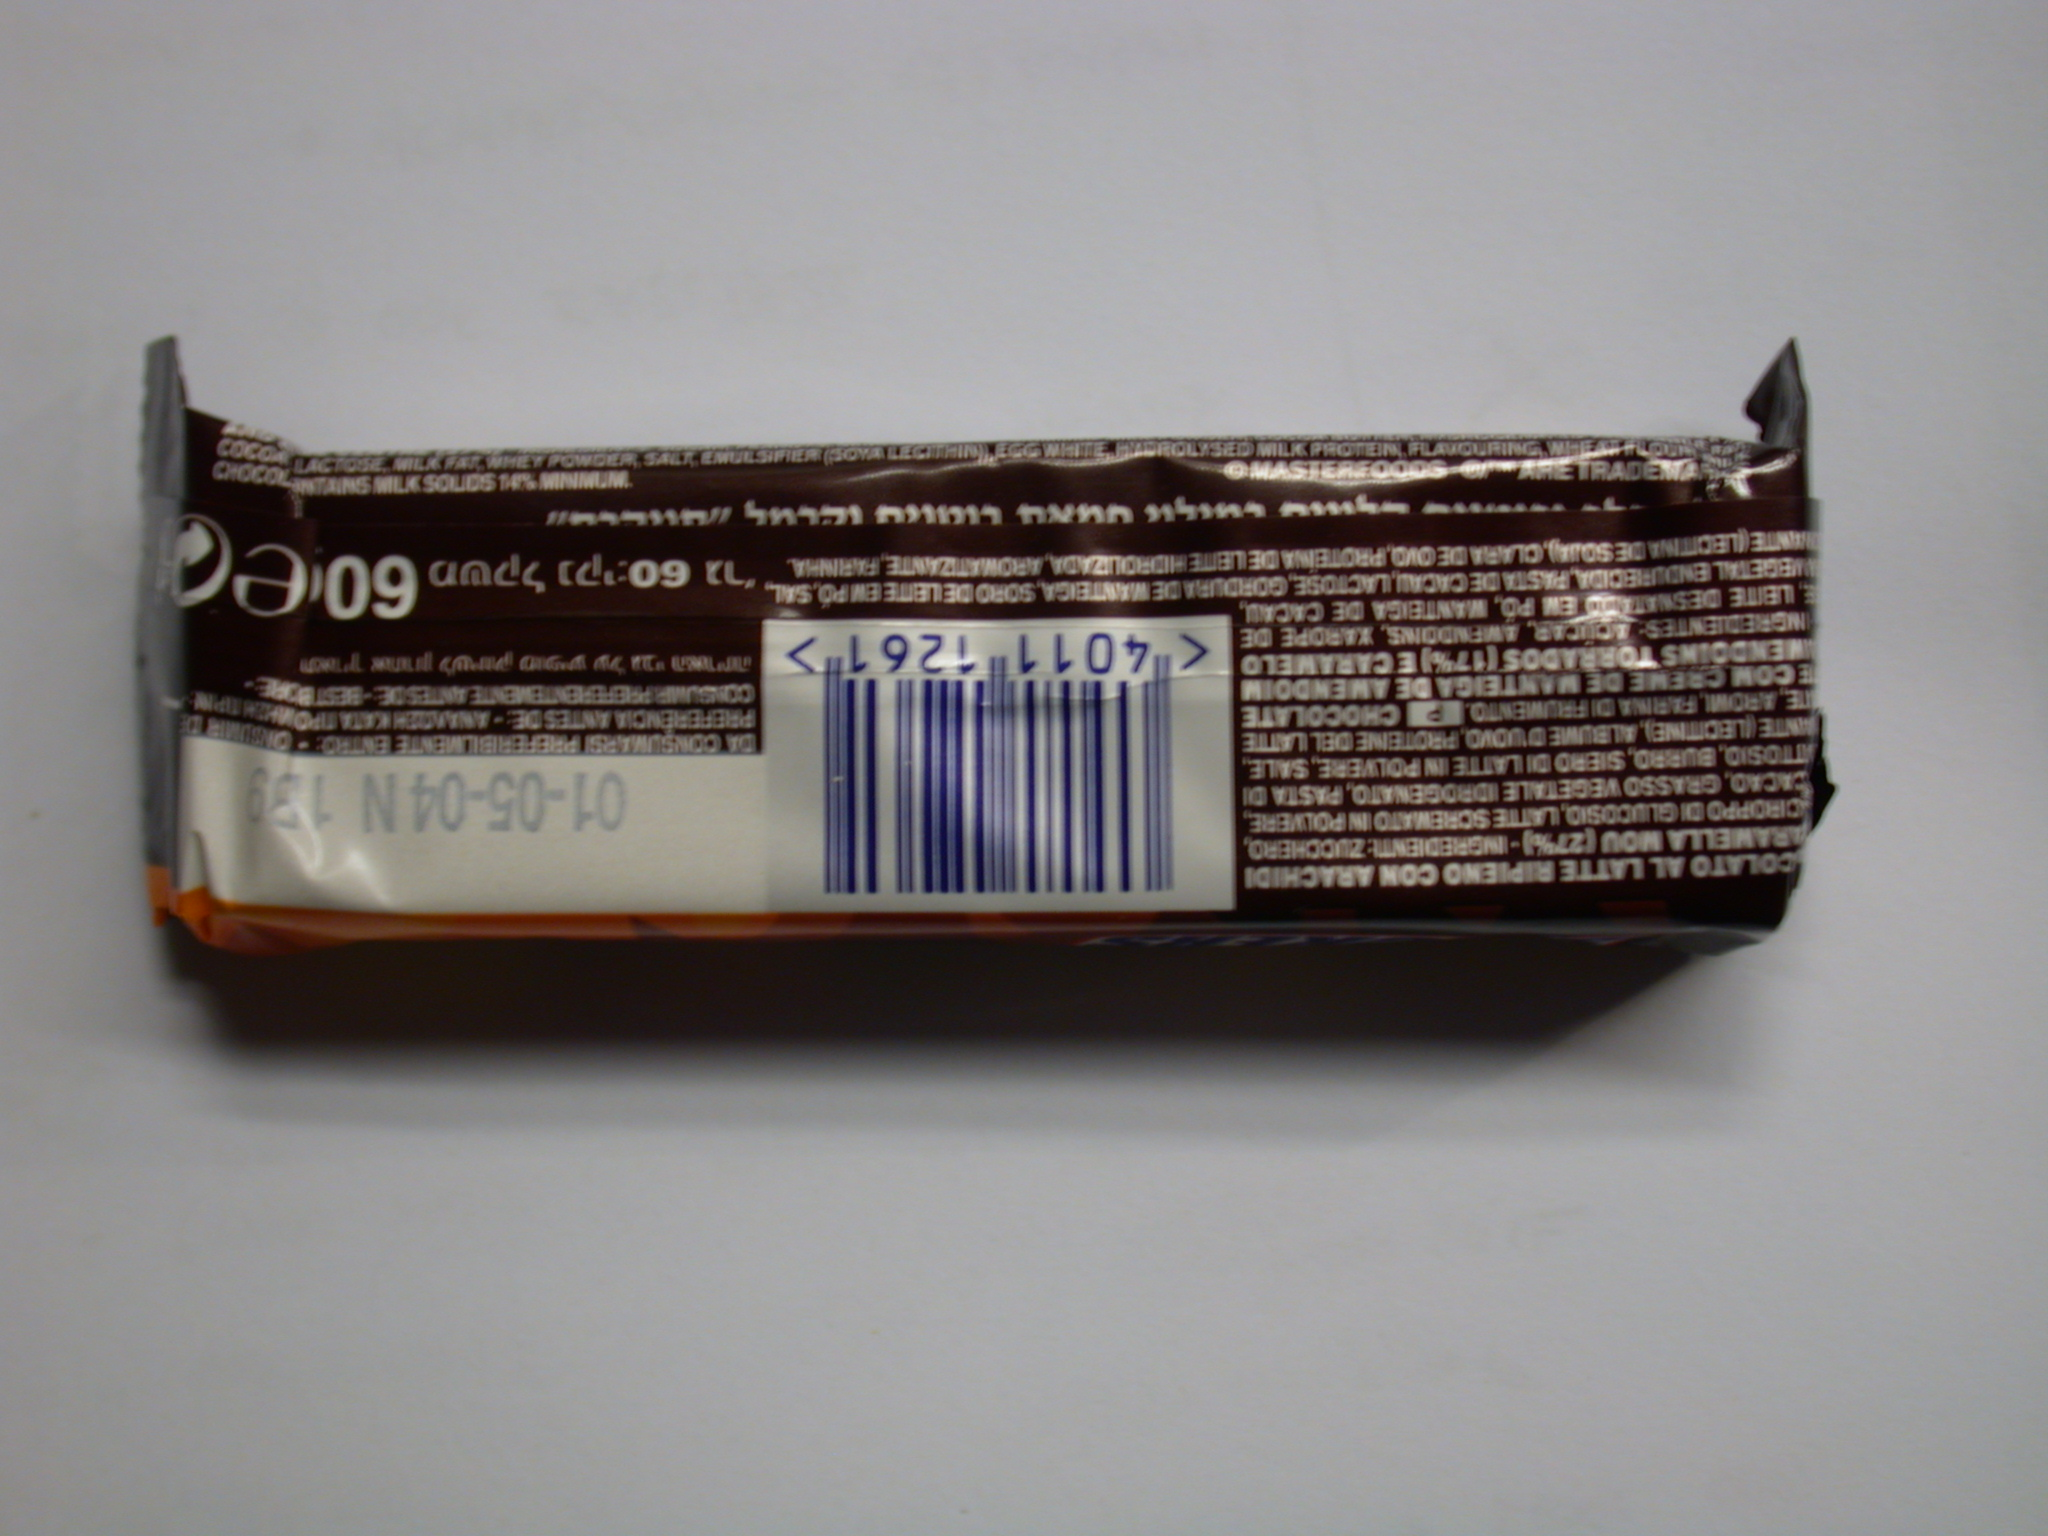 snicker snickers wrapping candybar bar wrap chocolate plastic